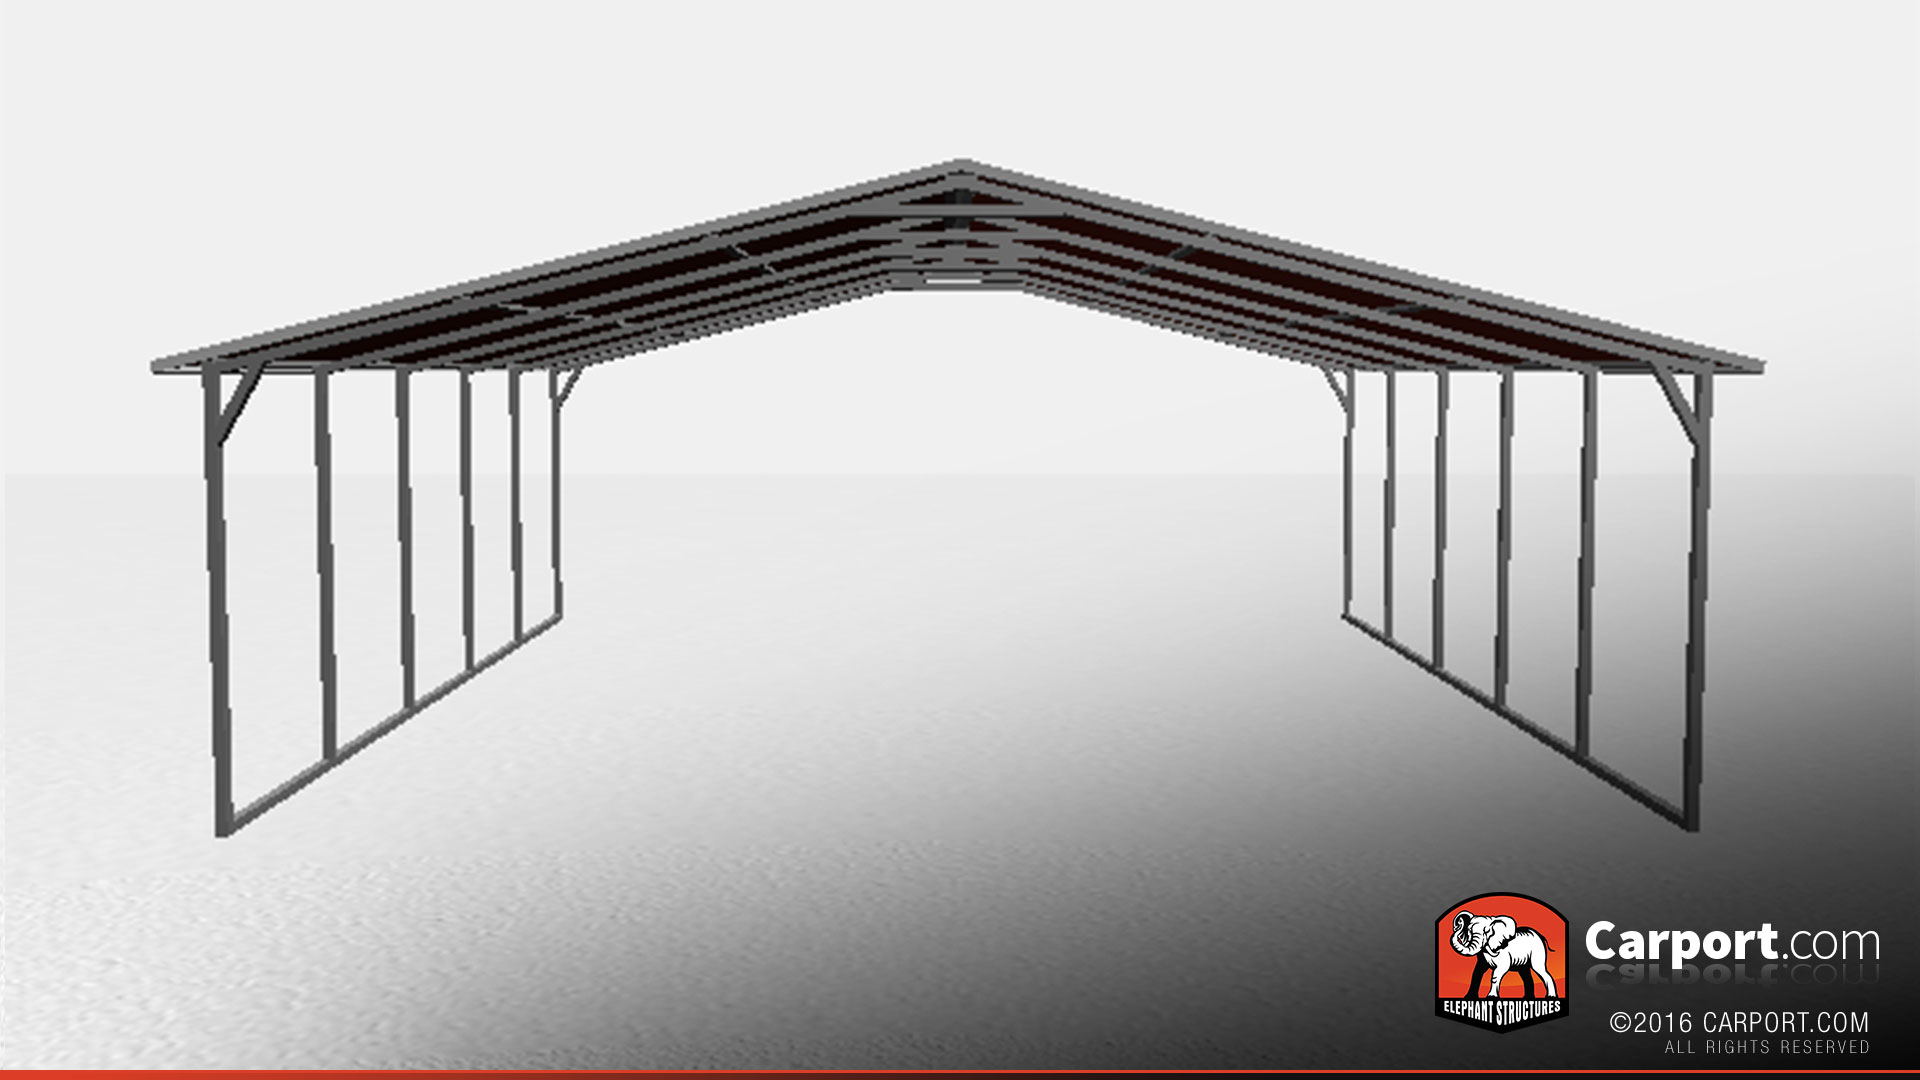 26 X 21 Metal Car Shelter For Two Cars Shop Metal Buildings